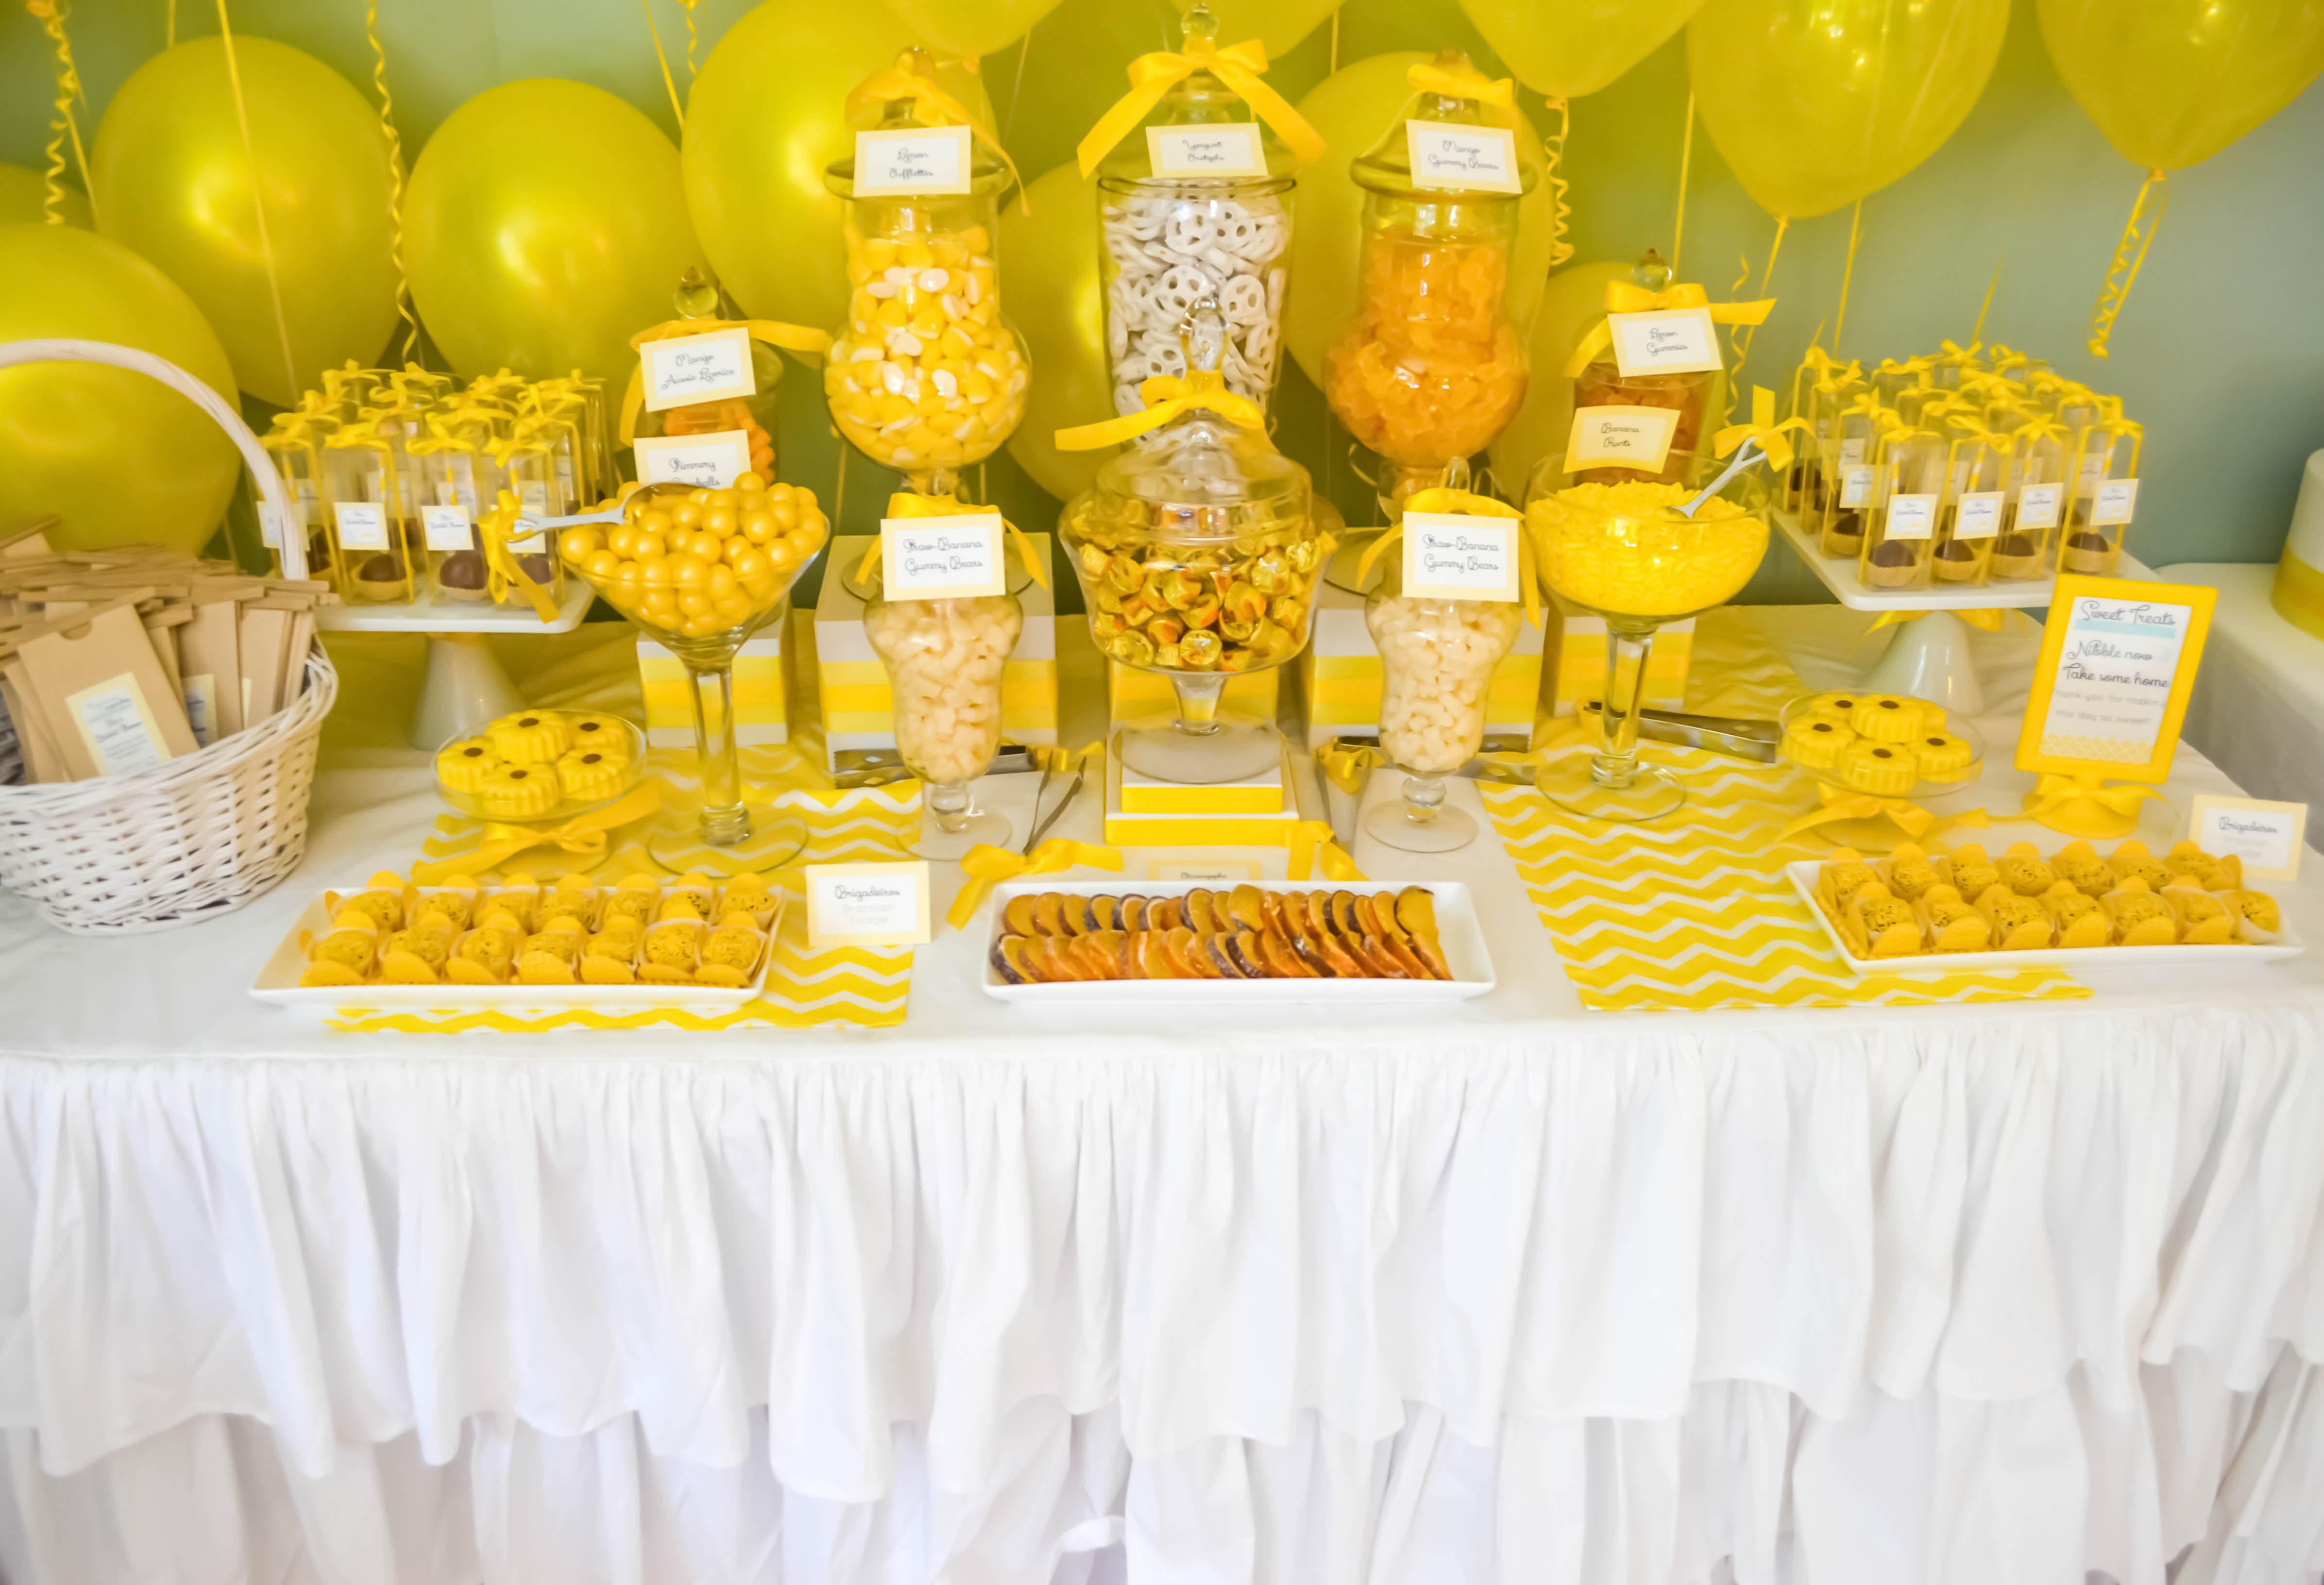 Unique blue and yellow decorations for wedding wedding siting wramples a wedding of every color junglespirit Choice Image